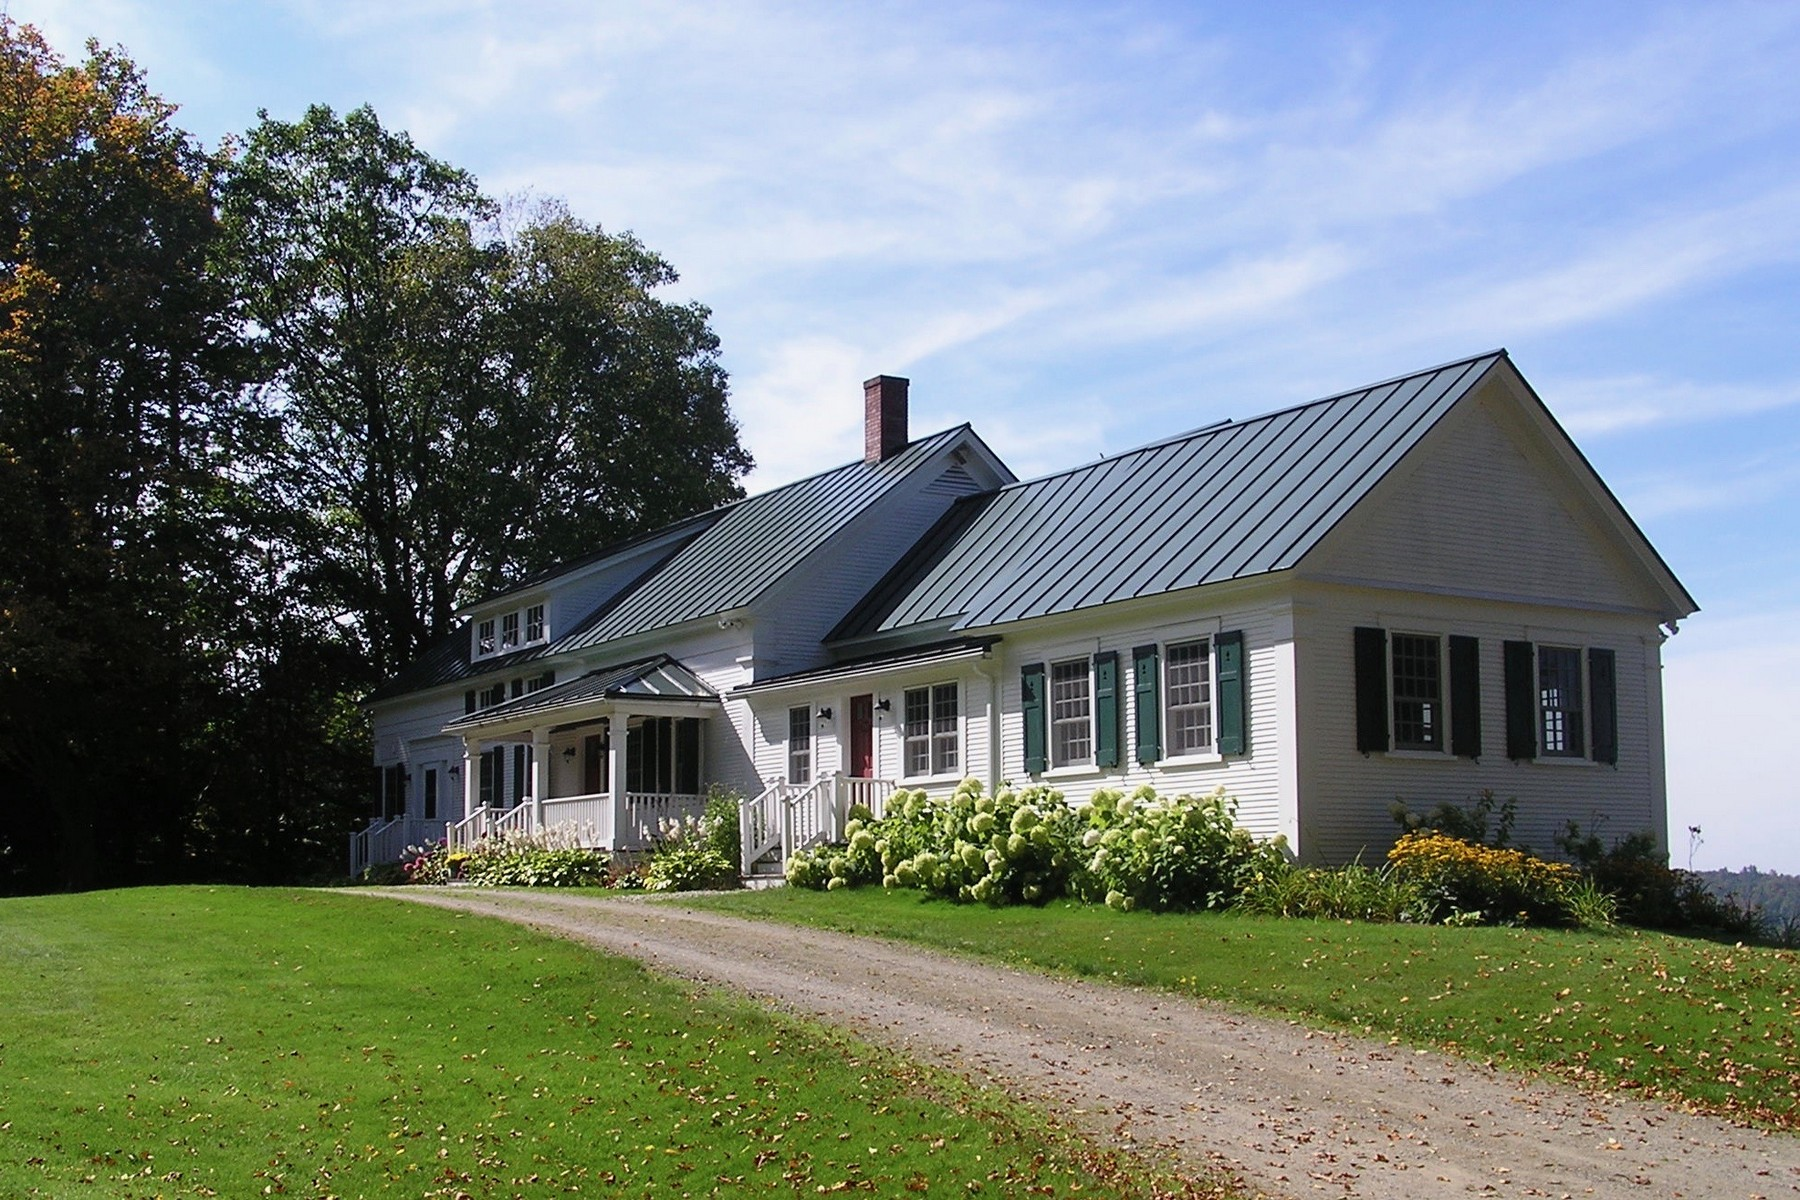 Single Family Home for Sale at 163 Slawson, Craftsbury Craftsbury, Vermont, 05827 United States